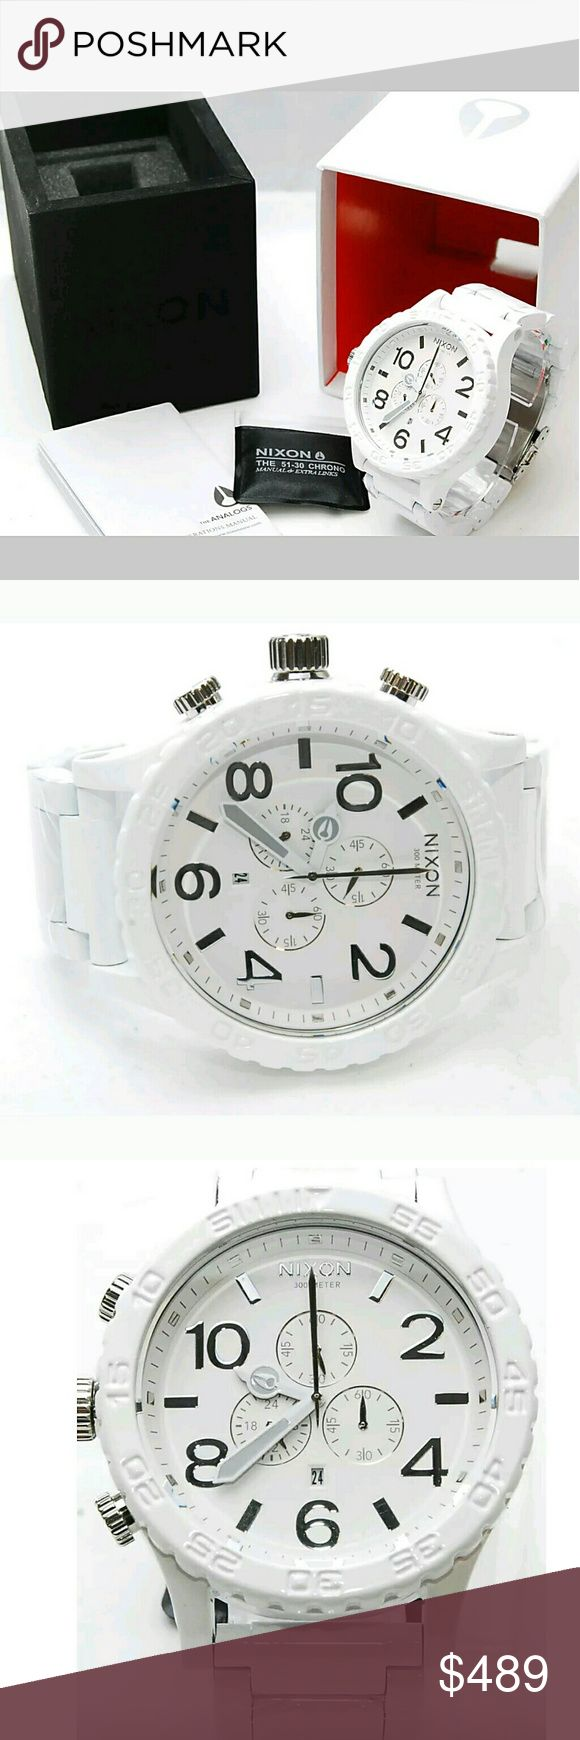 NWT NIXON Chrono PVD white mens 51-30 watch Brand NWT NIXON Chronograph 51-30 Chronograph Men's Watch.    Firm price firm price firm price firm price  $405.00 . AUTHENTIC WATCH  . AUTHENTIC BOX  . AUTHENTIC MANUAL    SHIPPING PLEASE ALLOW FEW BUSINESS DAYS FOR ME TO SHIPPED IT OFF.I HAVE TO GET IT FROM MY STORE.   THANK YOU FOR YOUR UNDERSTANDING nixon Accessories Watches